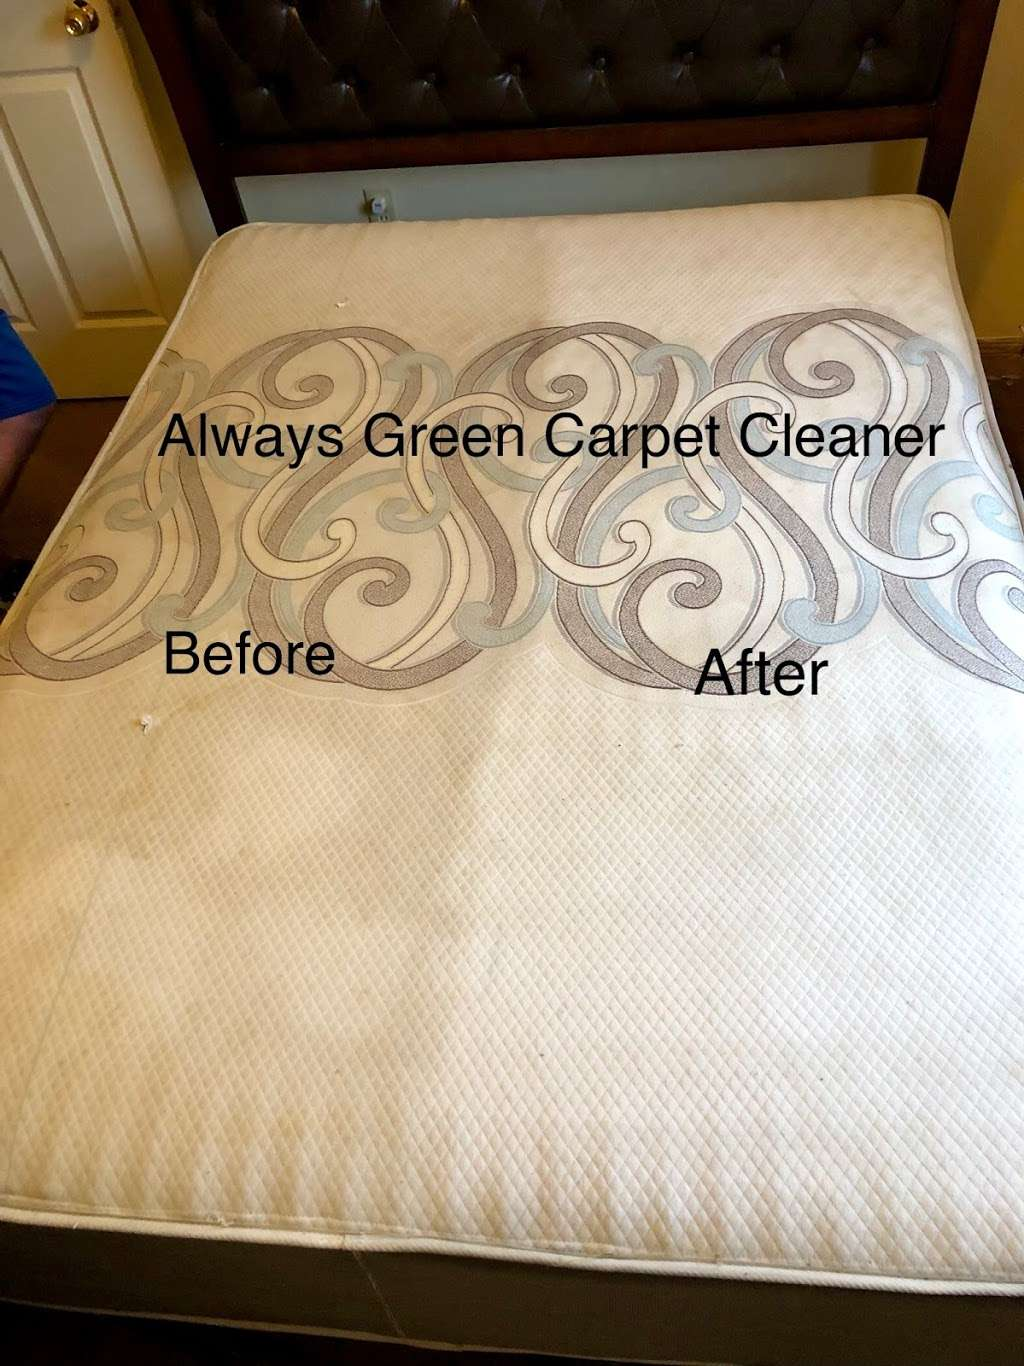 Always Green Carpet Cleaner Queens NY - 20%OFF Rug Cleaning & Up - laundry  | Photo 8 of 10 | Address: 8320 98th St, Woodhaven, NY 11421, USA | Phone: (917) 475-0141